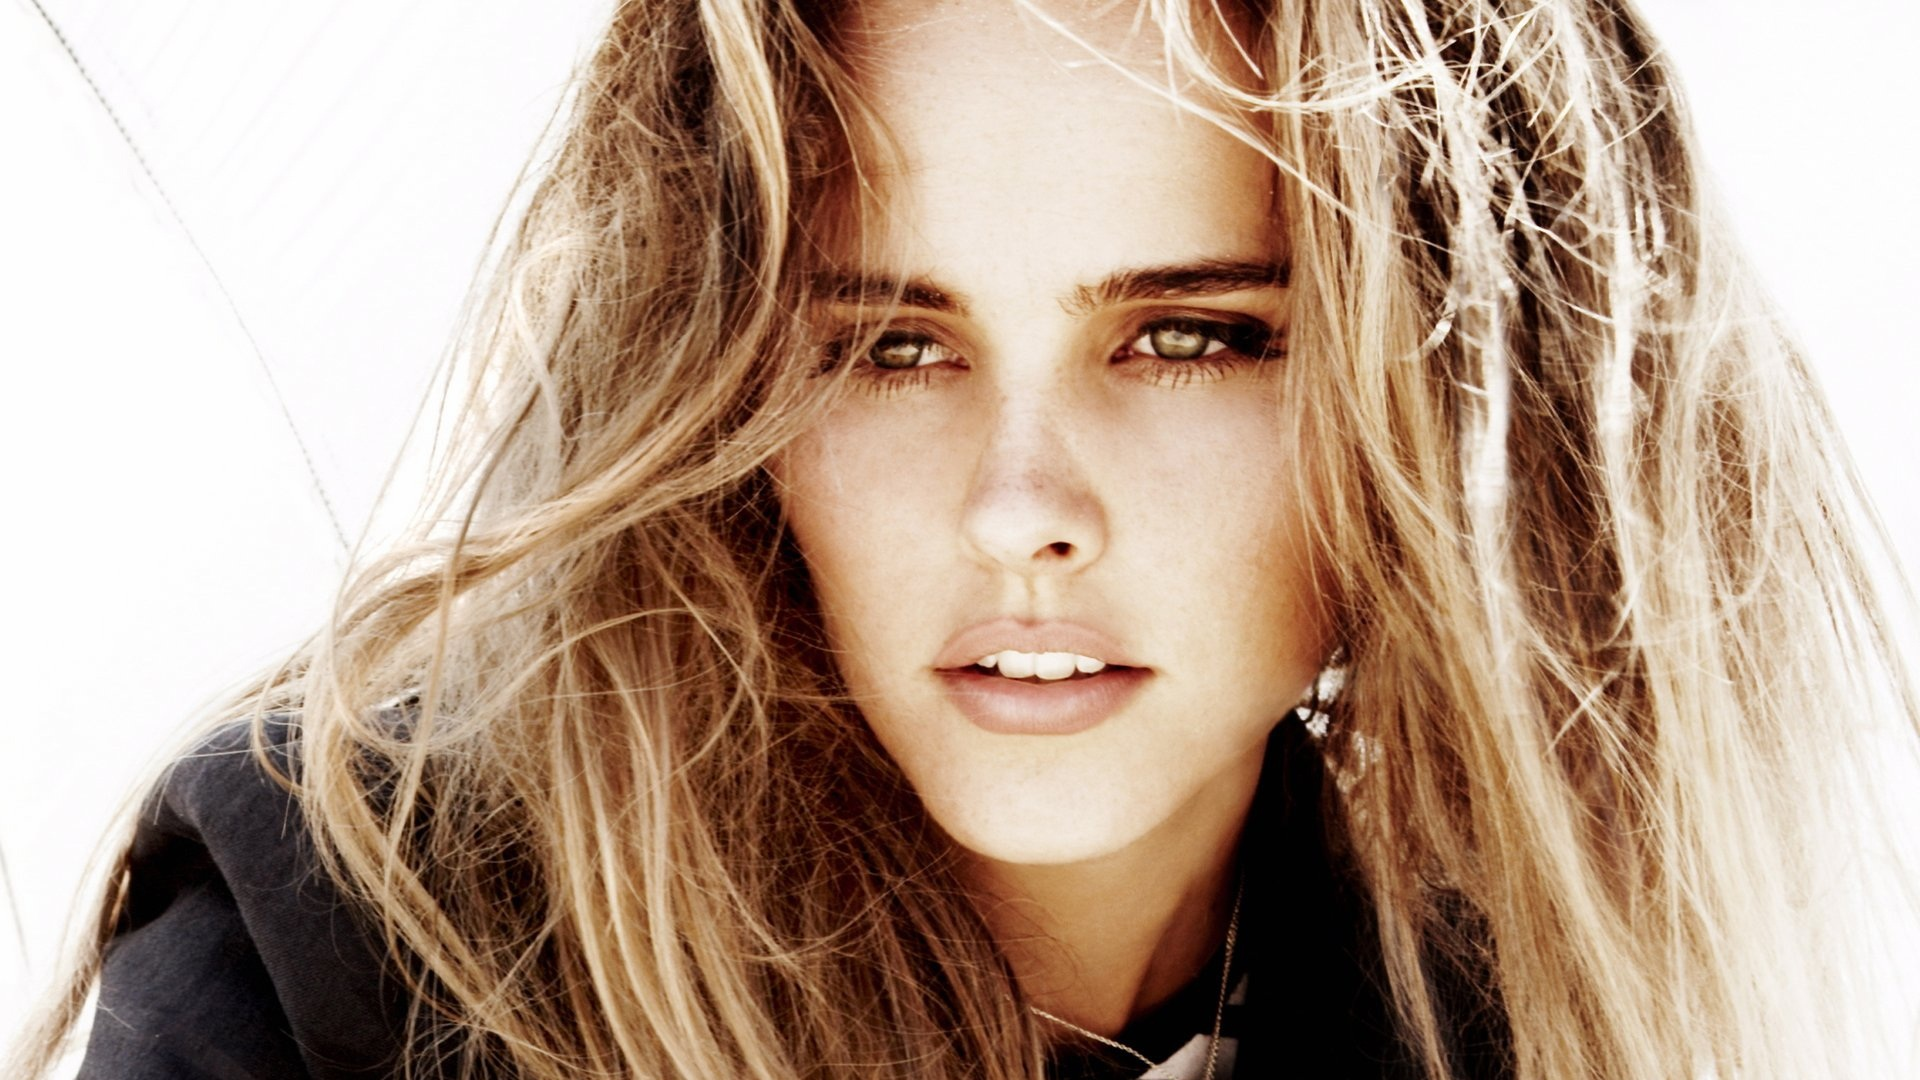 Isabel   Isabel Lucas Wallpaper 31607233 1920x1080